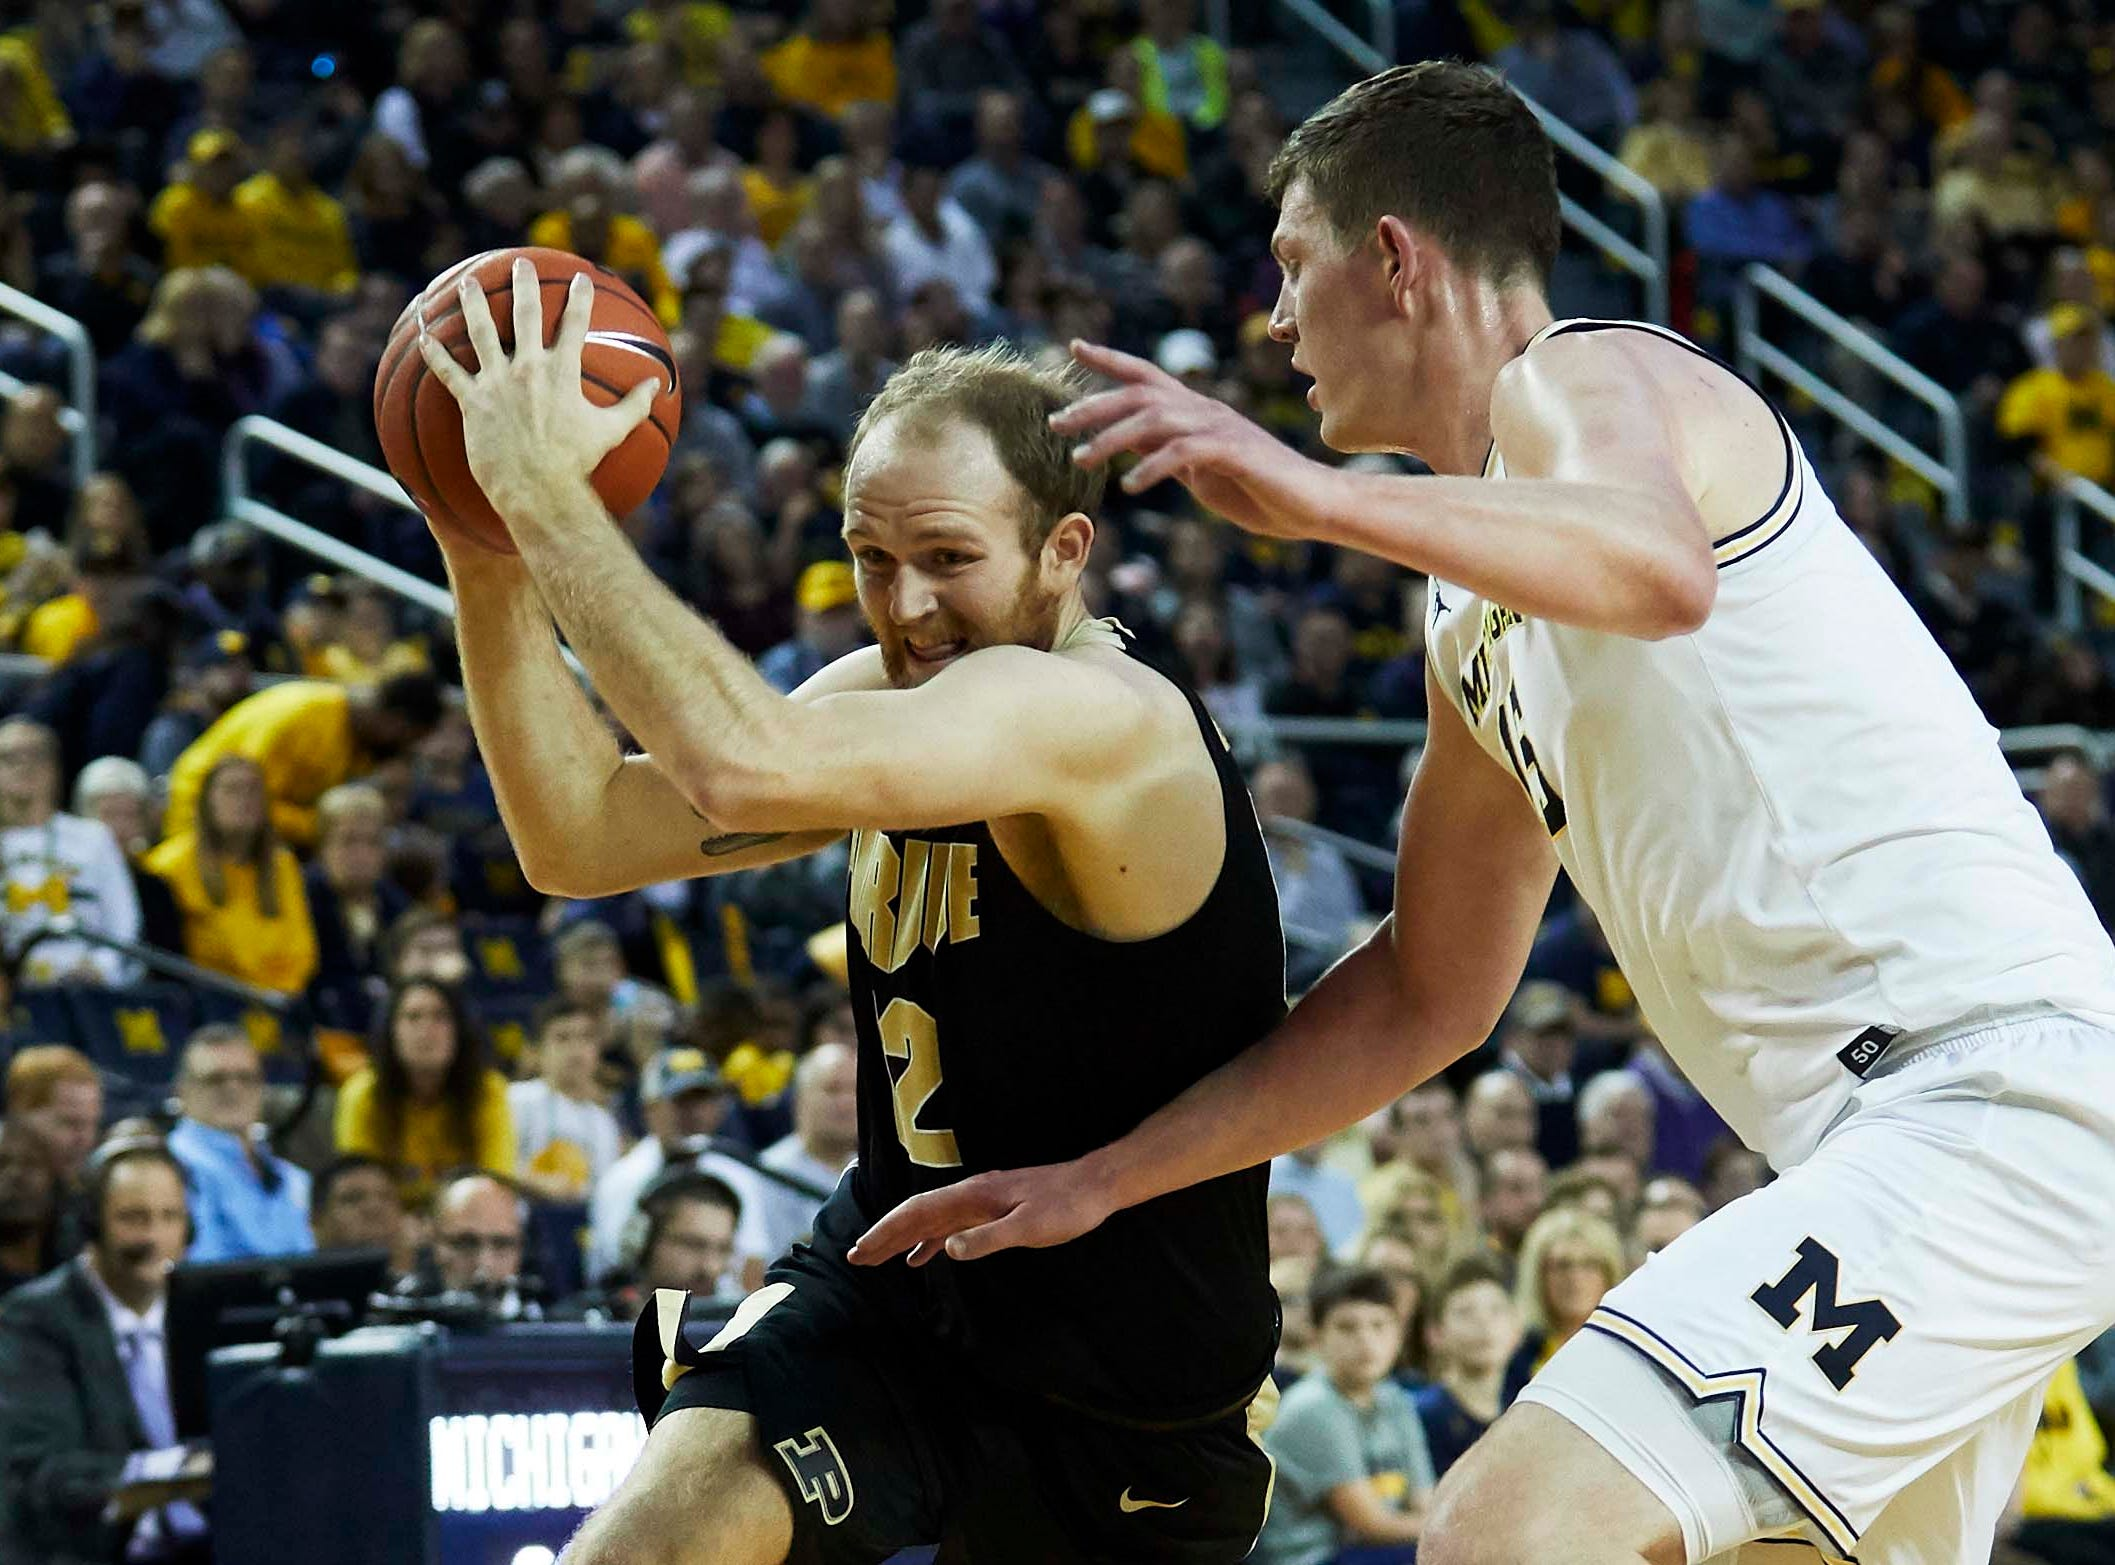 Dec 1, 2018; Ann Arbor, MI, USA; Purdue Boilermakers forward Evan Boudreaux (12) dribbles defended by Michigan Wolverines center Jon Teske (15) in the second half at Crisler Center. Mandatory Credit: Rick Osentoski-USA TODAY Sports